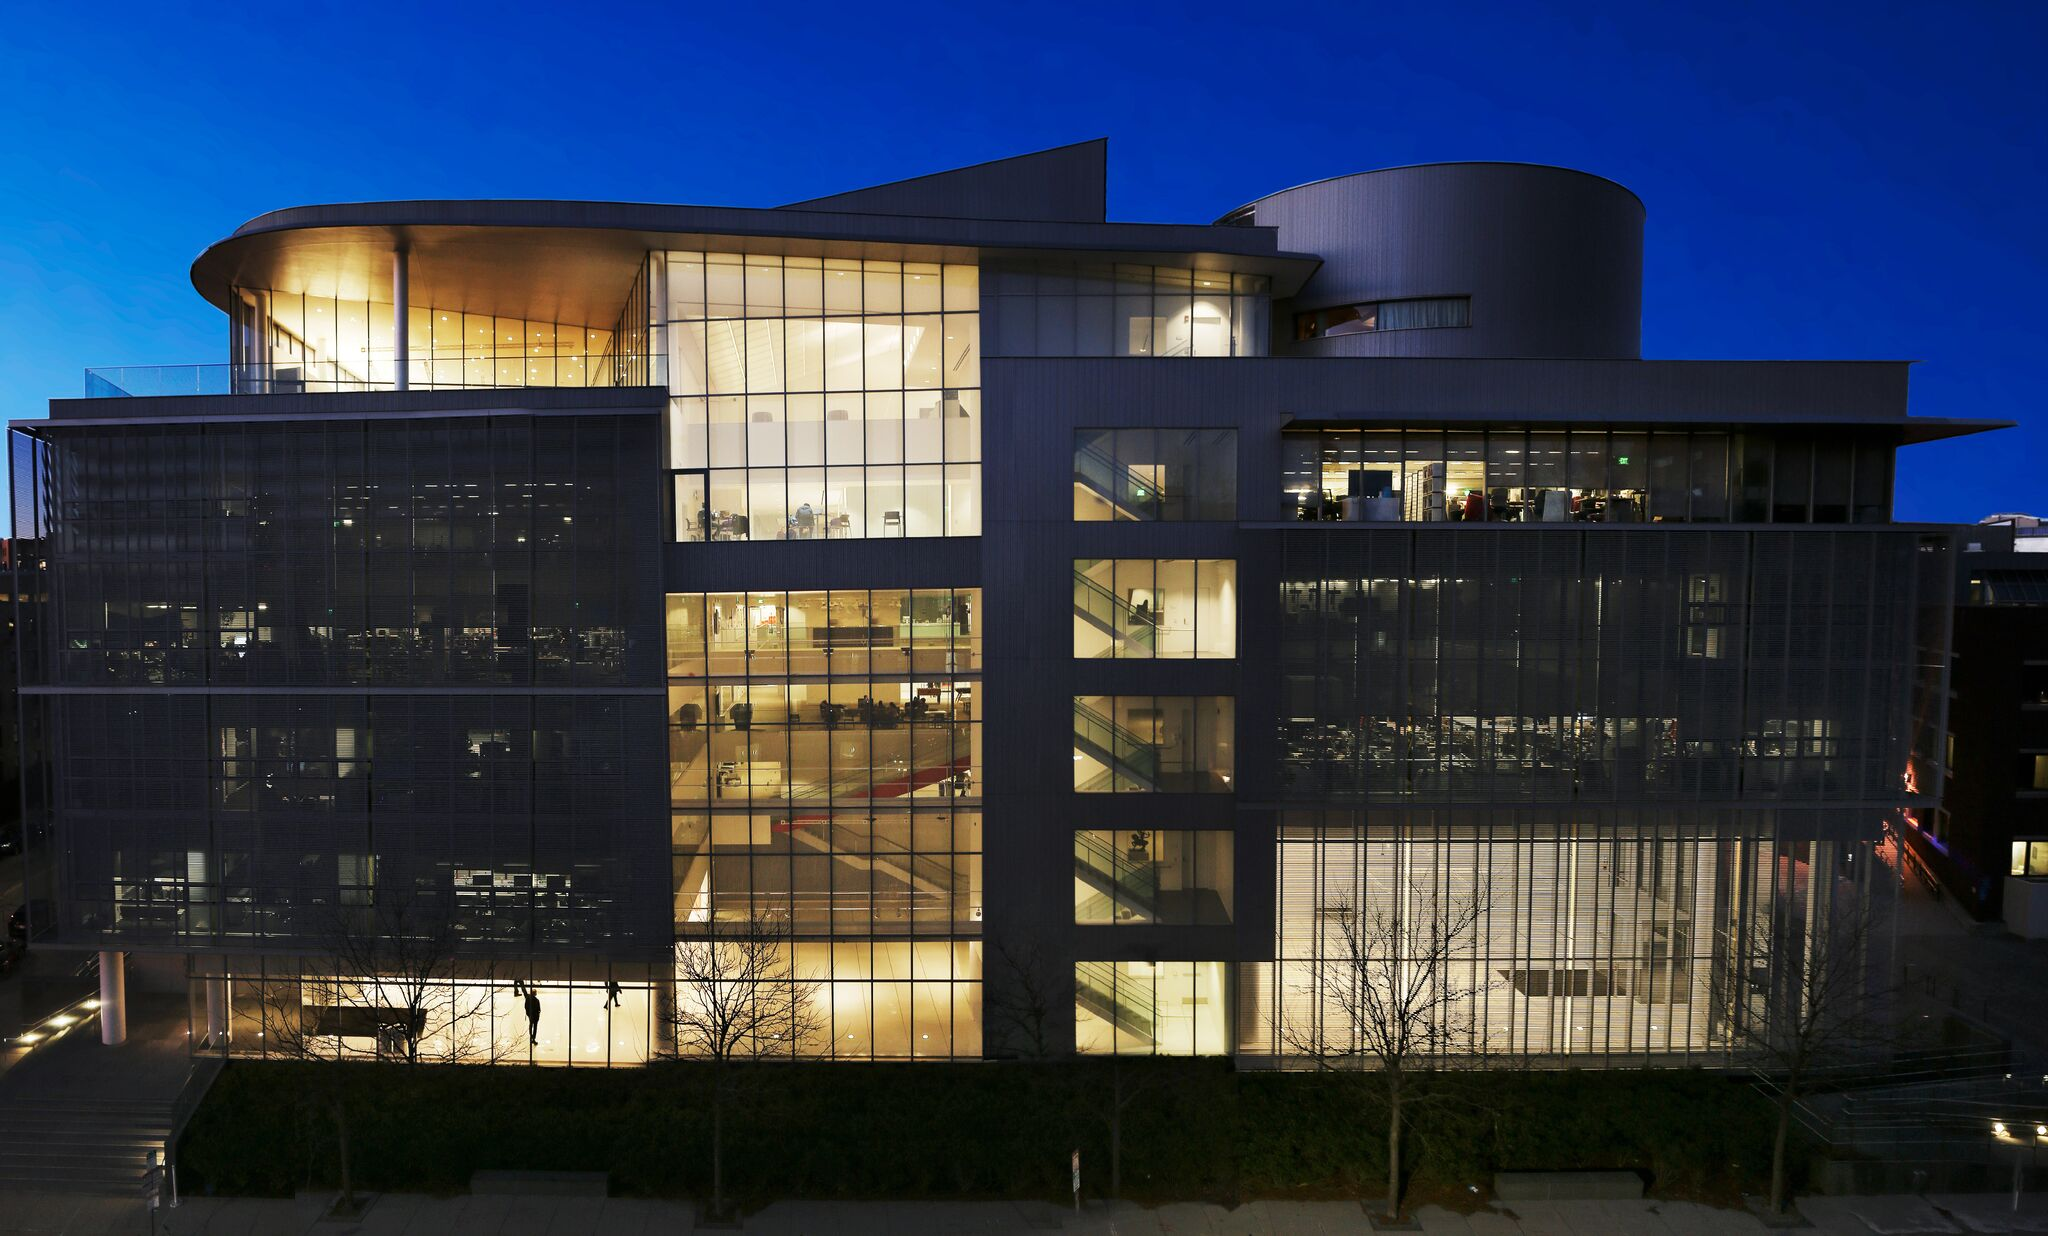 MIT Media Lab75 Amherst St.Cambridge, MA 02139 -